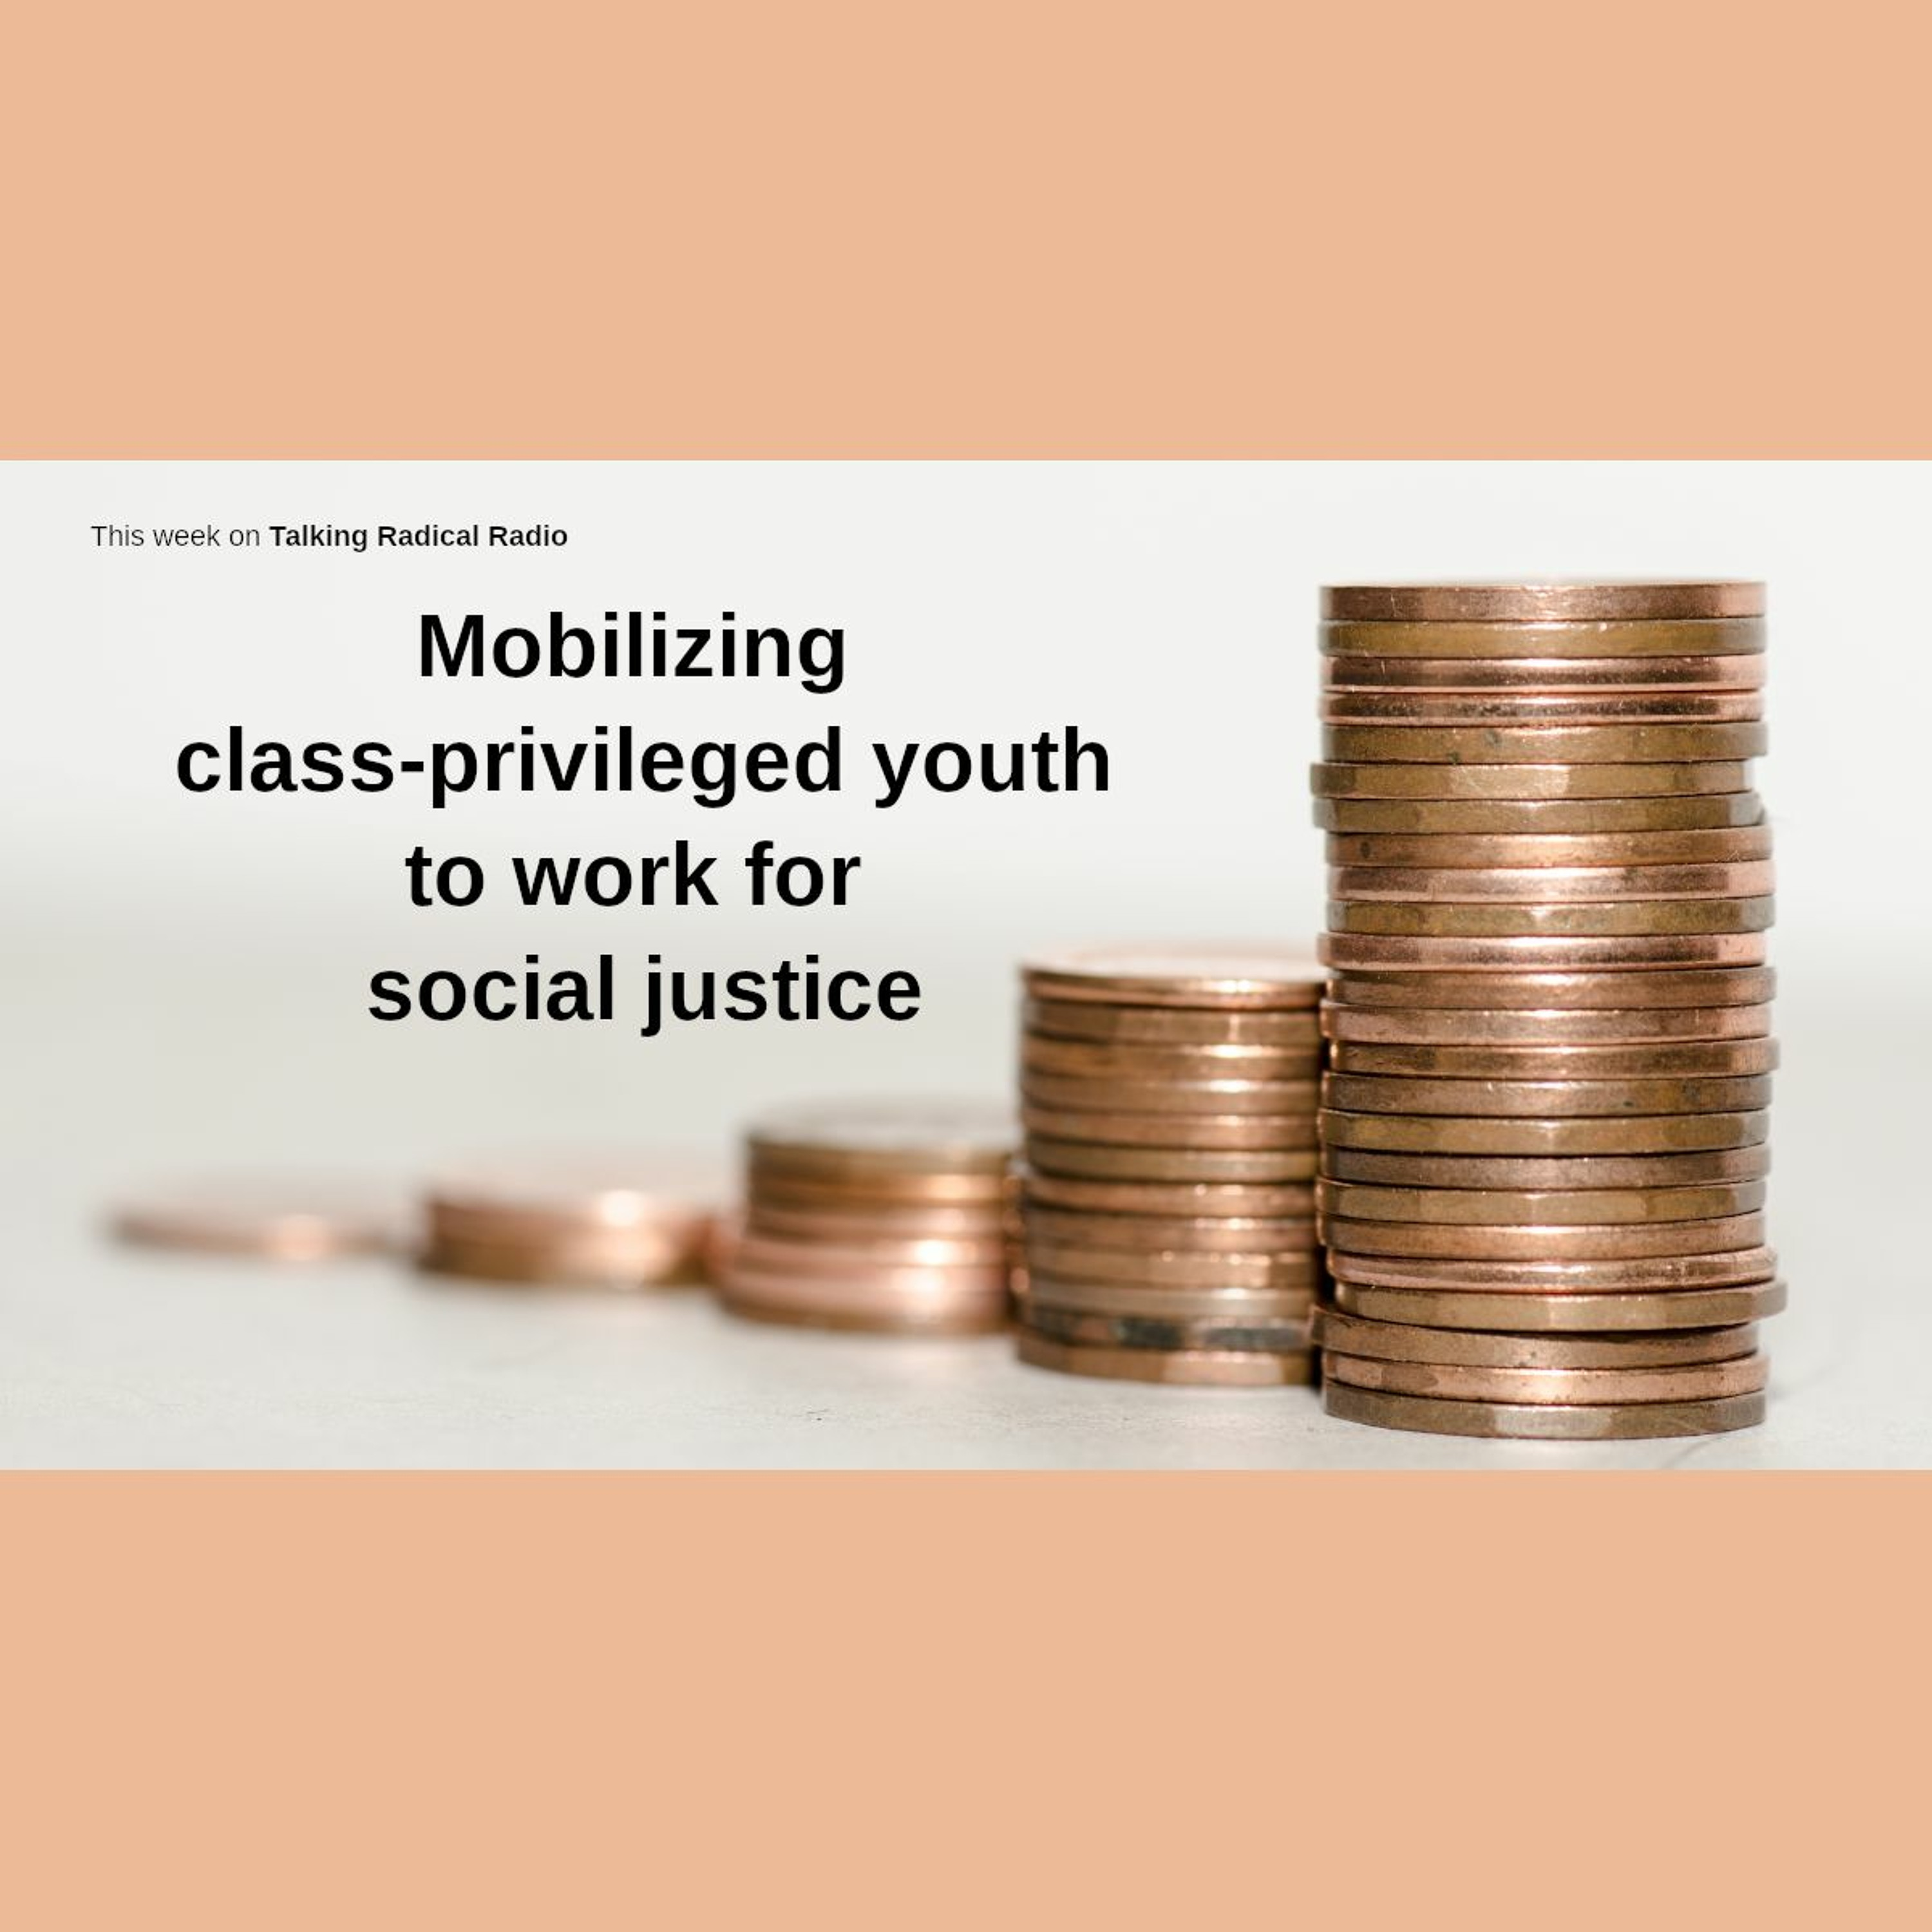 Mobilizing class-privileged youth to work for social justice